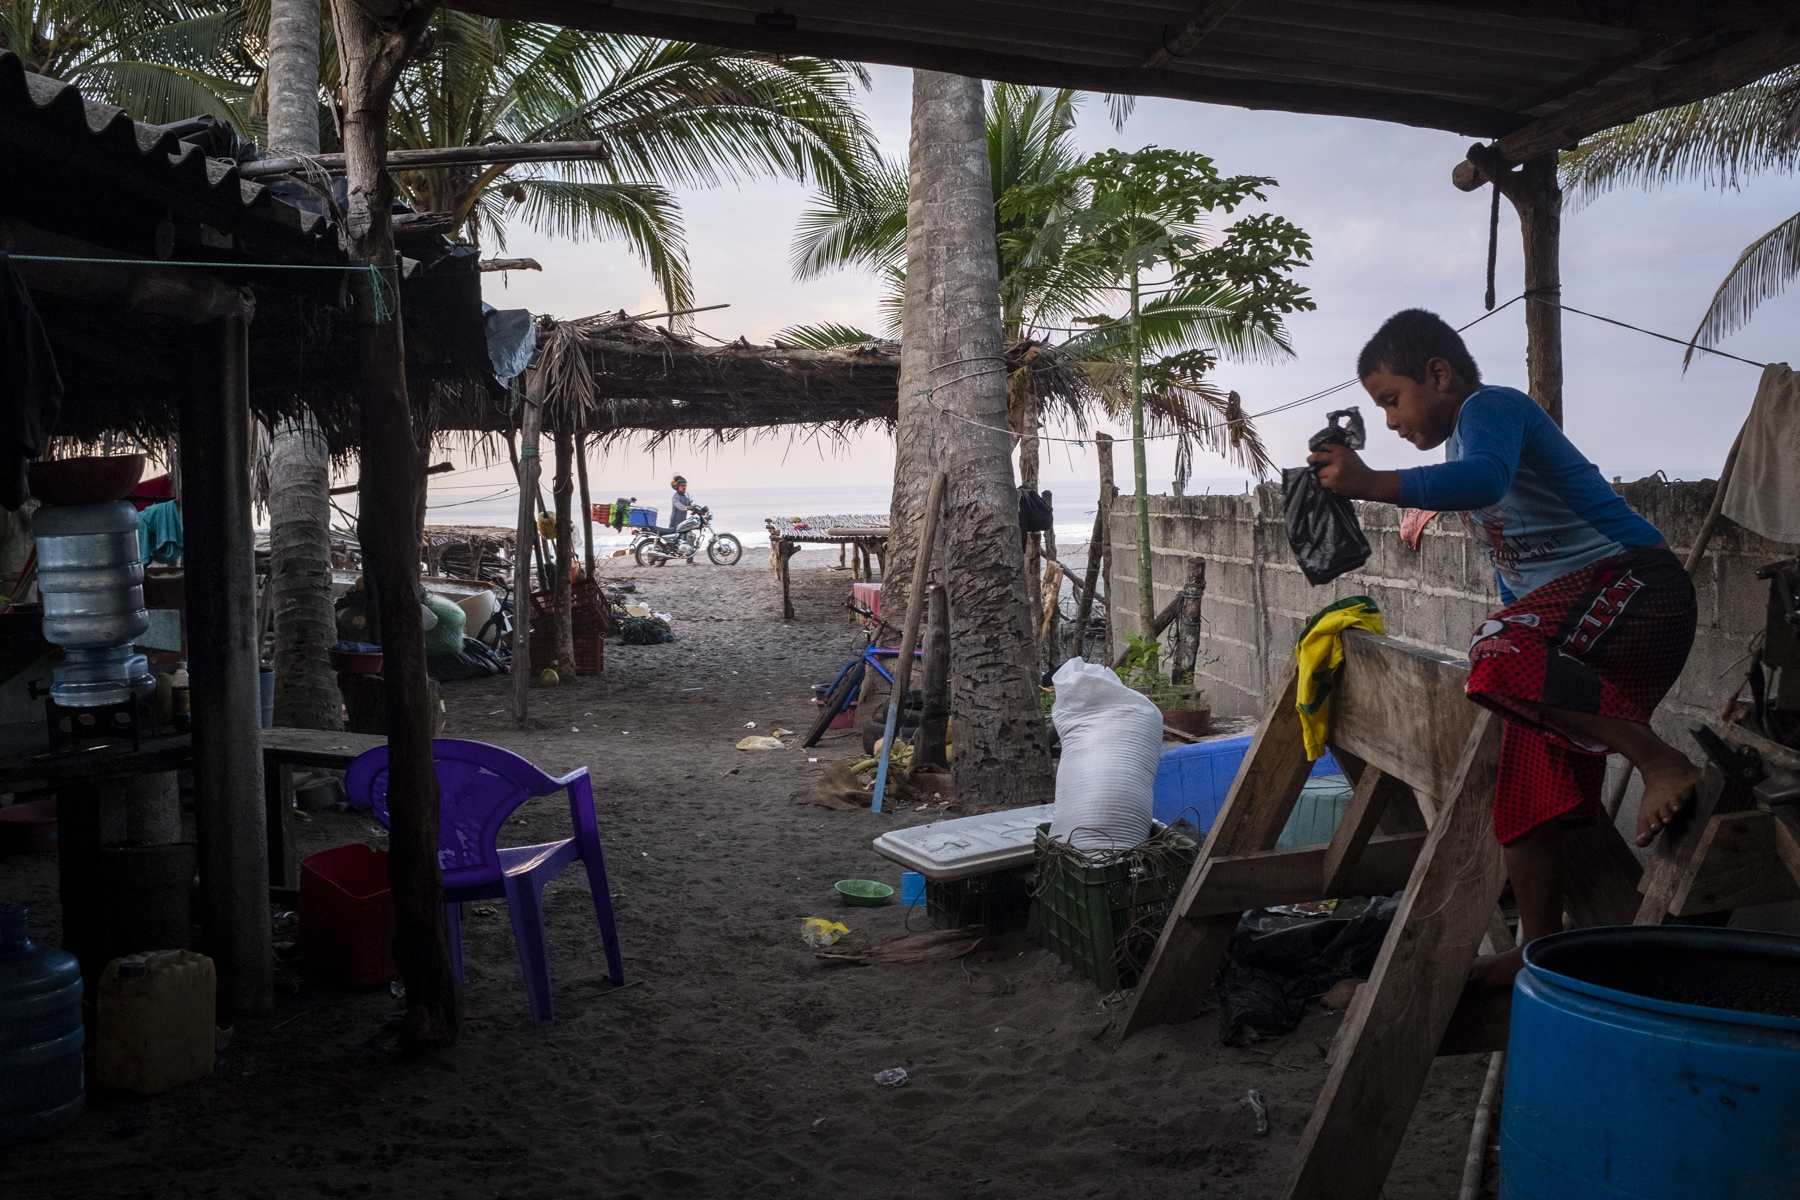 At dawn, Josue Elias, 8, buys bread from a local merchant to feed his father and older brother when they return from fishing. Most fishermen in the community work during the night as it increases their chances of catching fish and making a bigger profit.